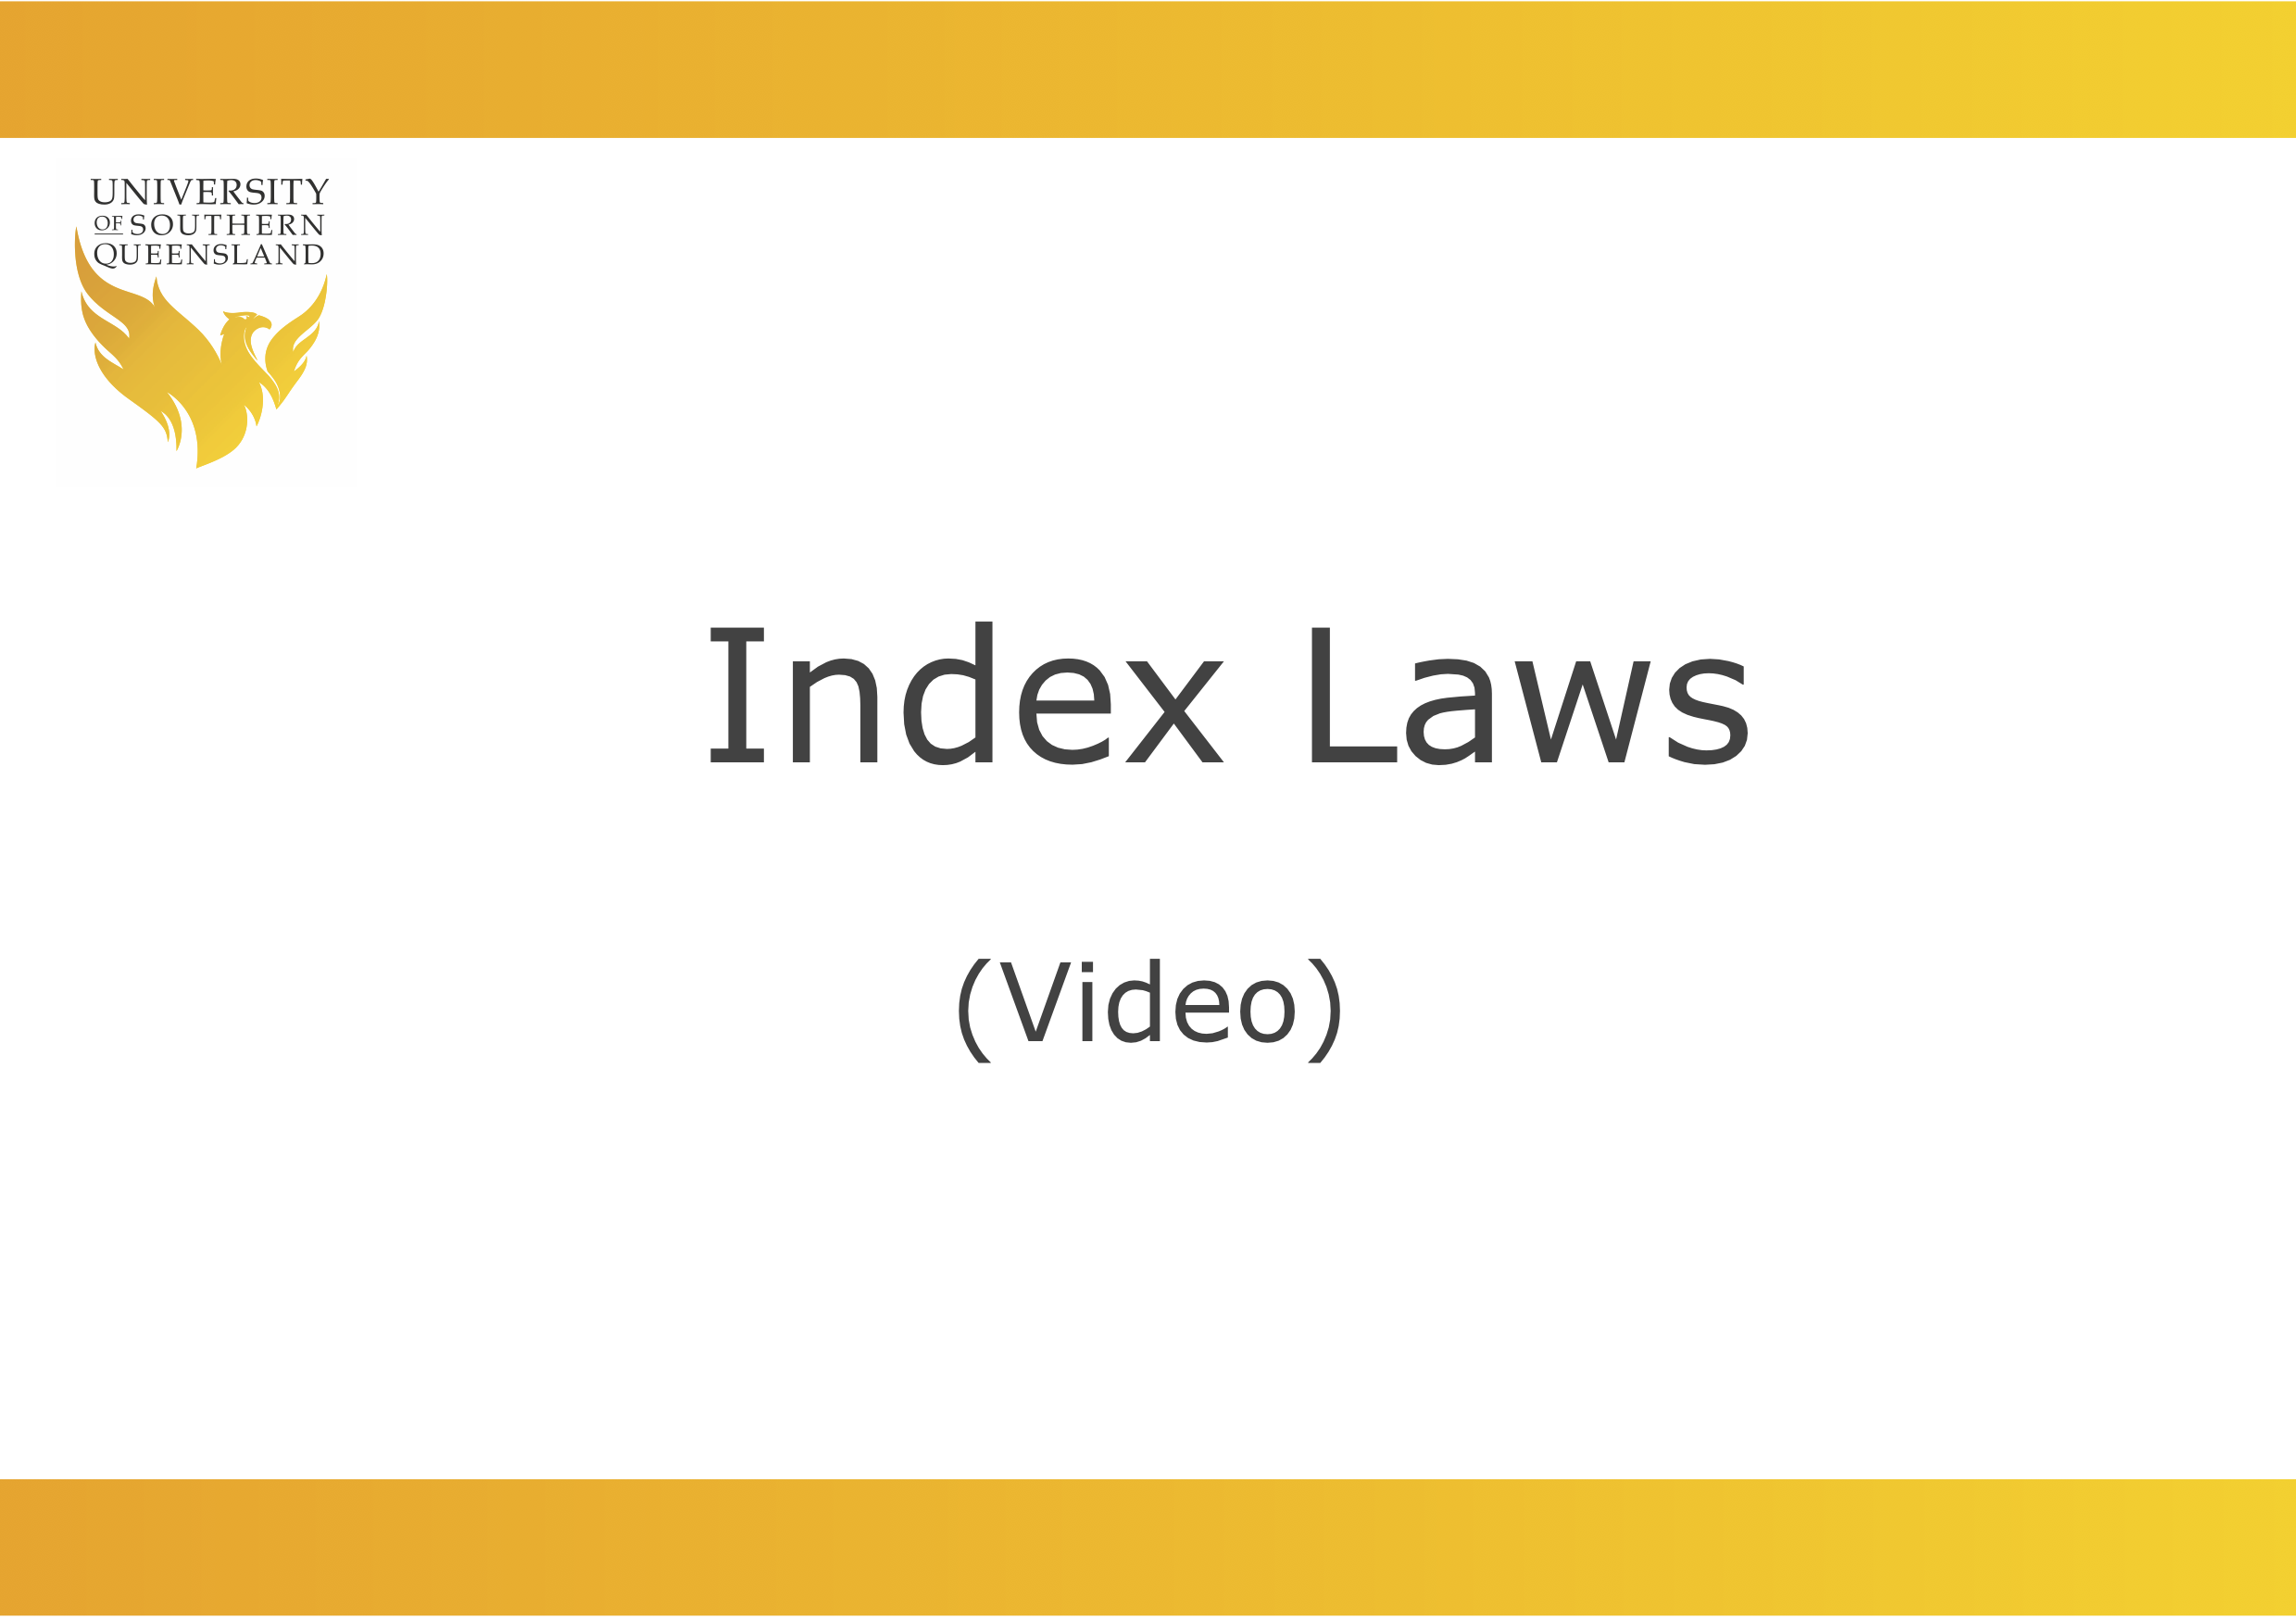 index laws image